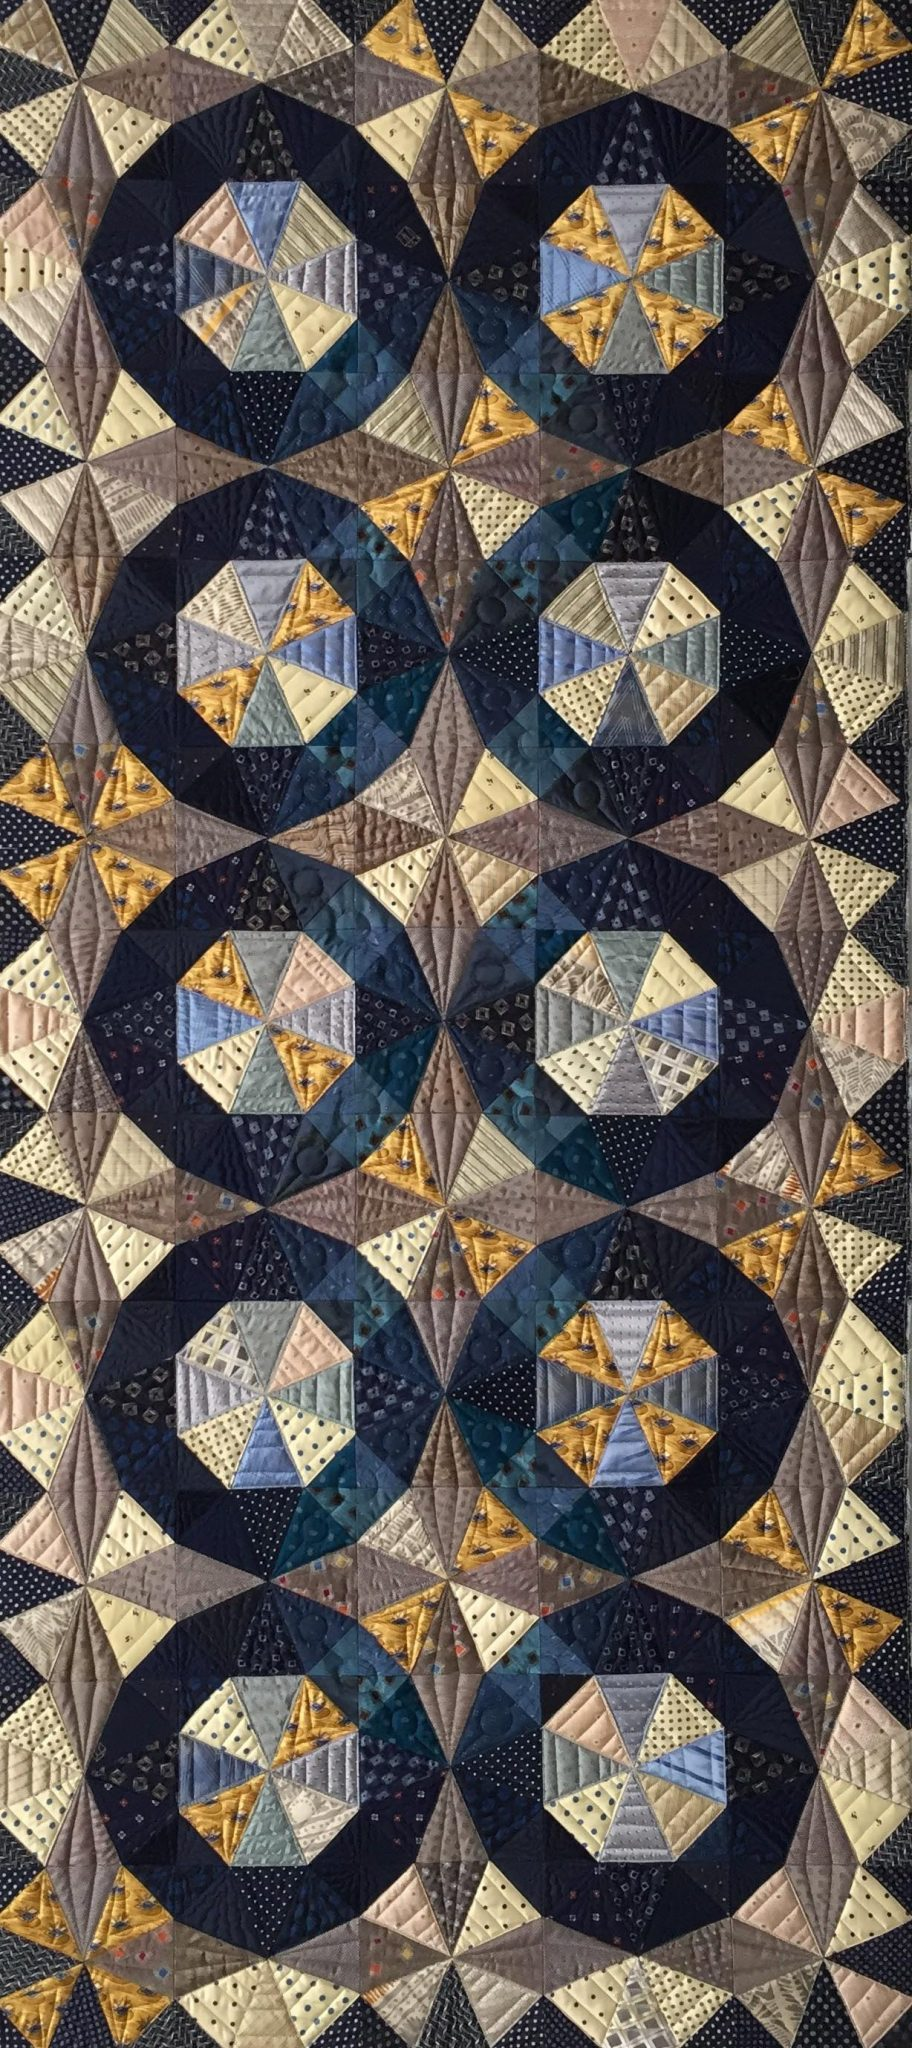 Blue Wheels made by Julia McLeod, quilted by Sue Fox